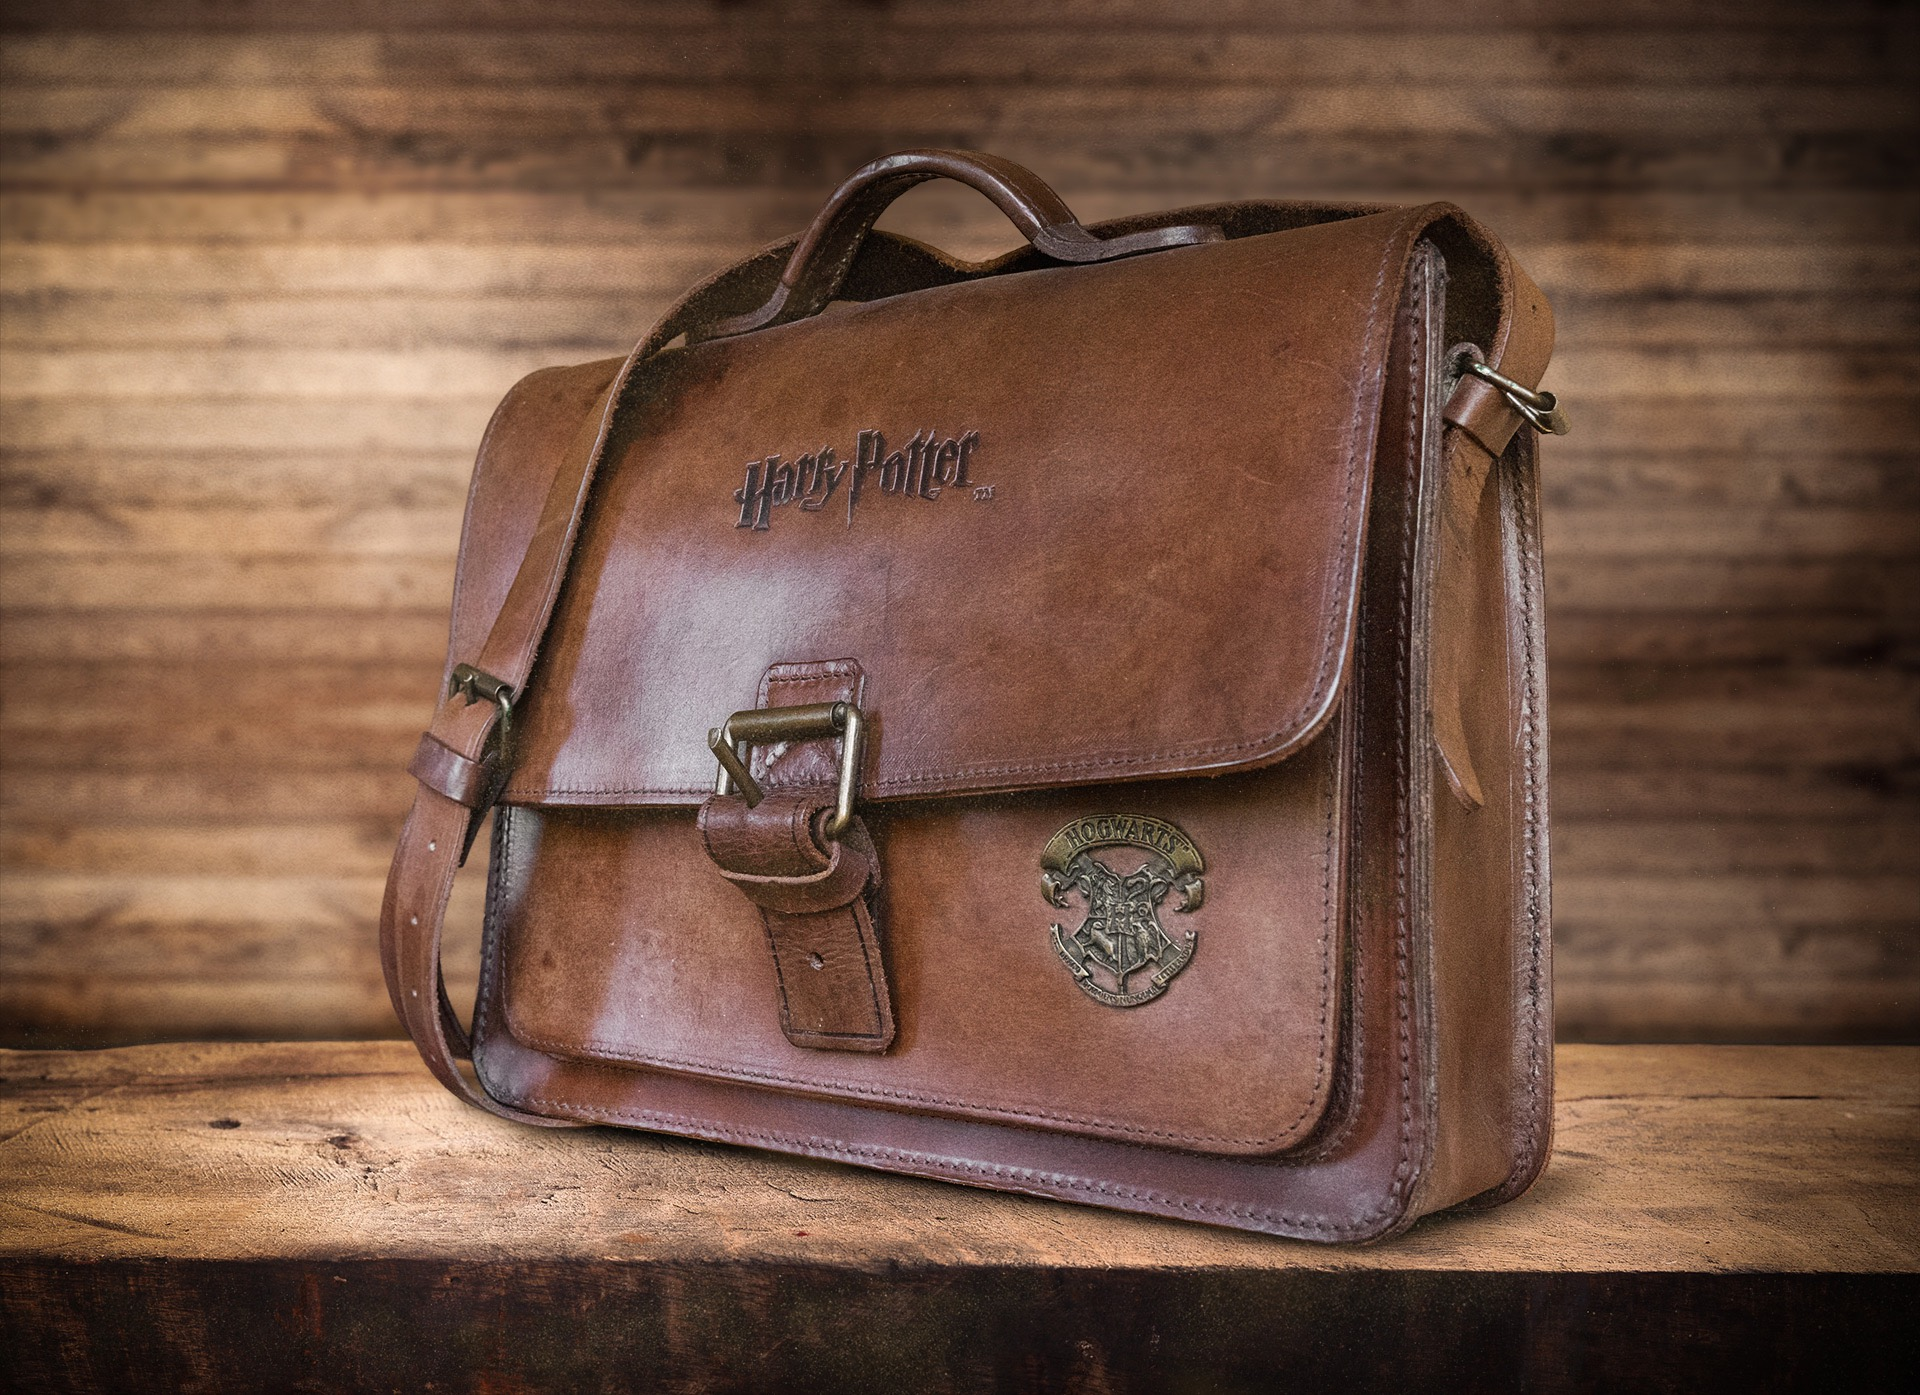 Small Harry Potter satchel made by Ruitertassen.